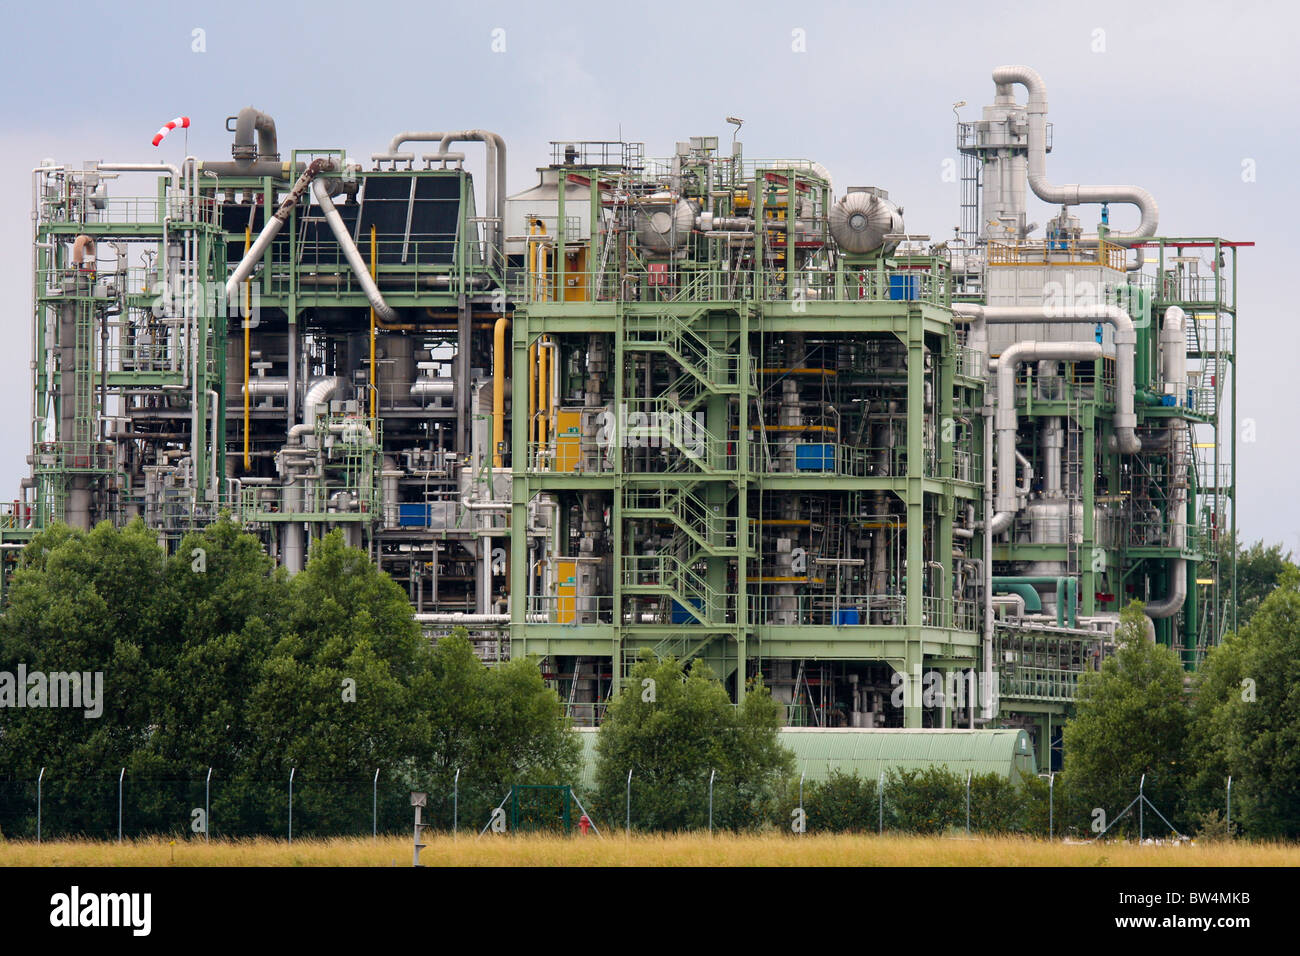 Chemical plant - Stock Image